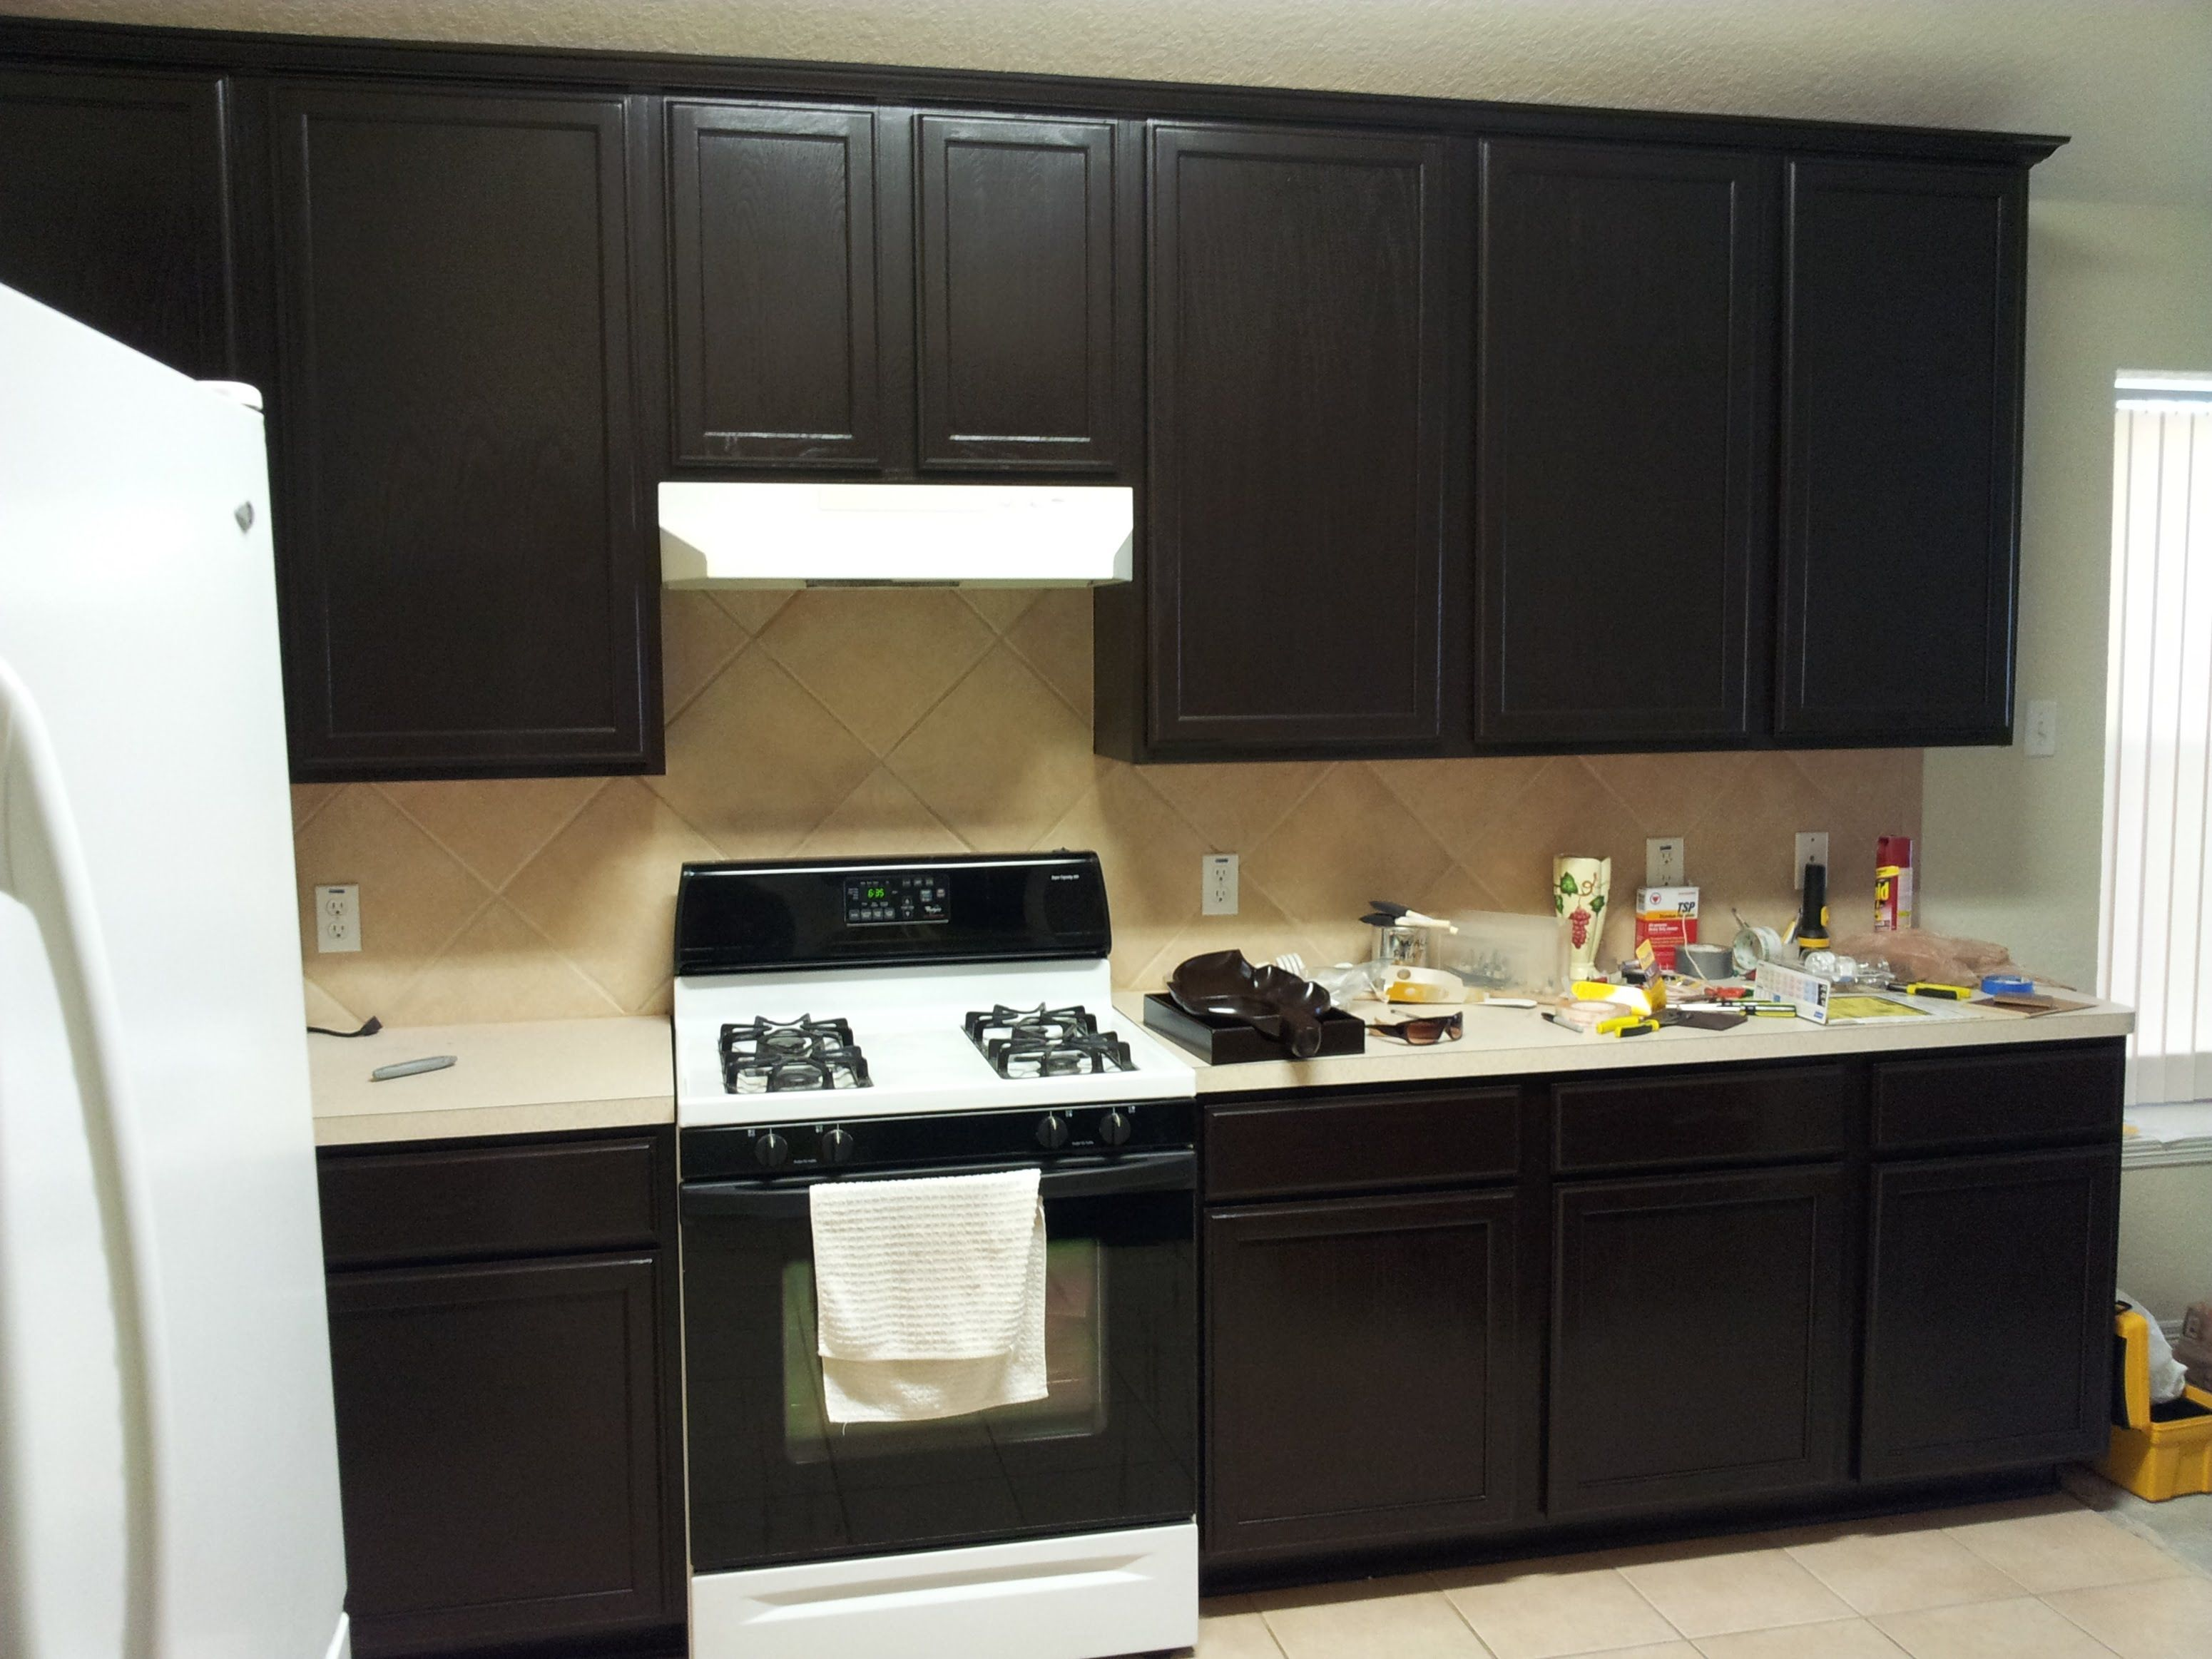 What techniques to follow when staining kitchen cabinets ...